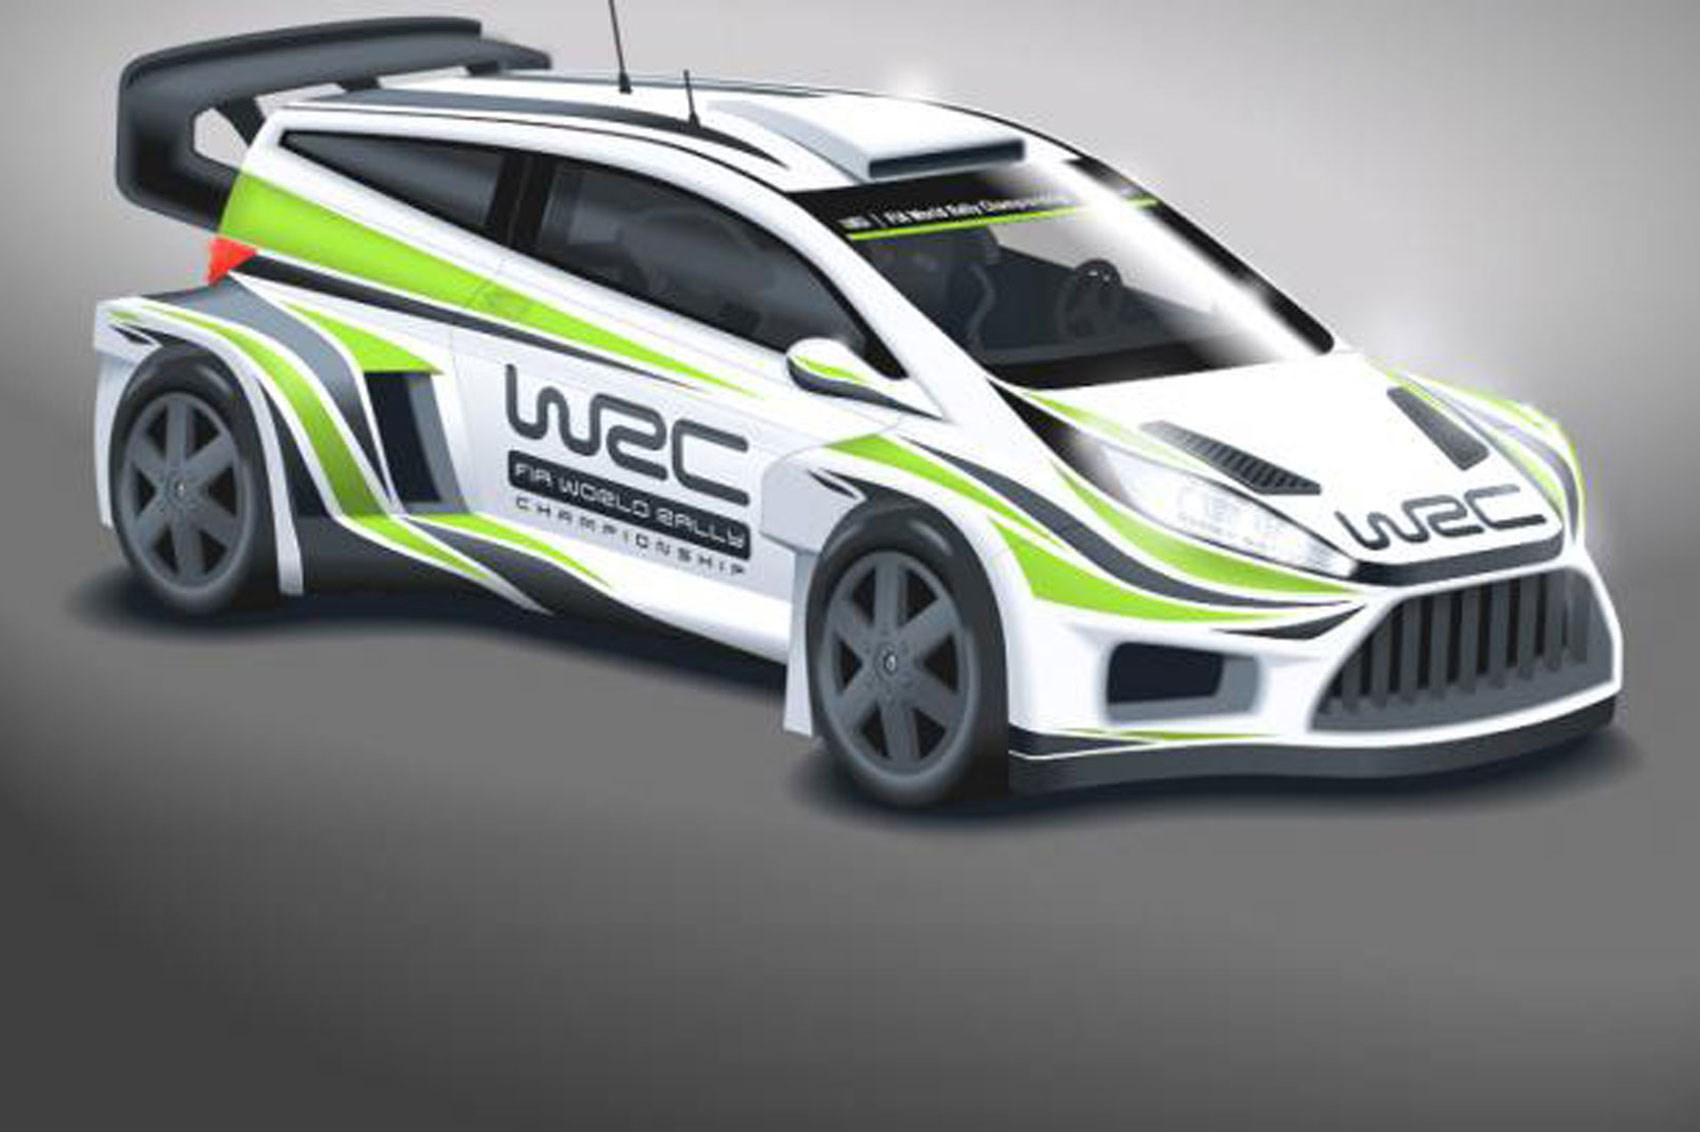 Ultrablogus  Marvelous Wild New Look For Wrc Cars In  By Car Magazine With Lovable Wrc Cars Will Get Wider Bodies Bigger Wings And More Power For  With Comely  Honda Civic Coupe Interior Also Subaru Impreza Interior Mods In Addition  Nissan Altima Interior And  Ford Explorer Interior As Well As Mazda   Interior Additionally  Mercedes E Interior From Carmagazinecouk With Ultrablogus  Lovable Wild New Look For Wrc Cars In  By Car Magazine With Comely Wrc Cars Will Get Wider Bodies Bigger Wings And More Power For  And Marvelous  Honda Civic Coupe Interior Also Subaru Impreza Interior Mods In Addition  Nissan Altima Interior From Carmagazinecouk